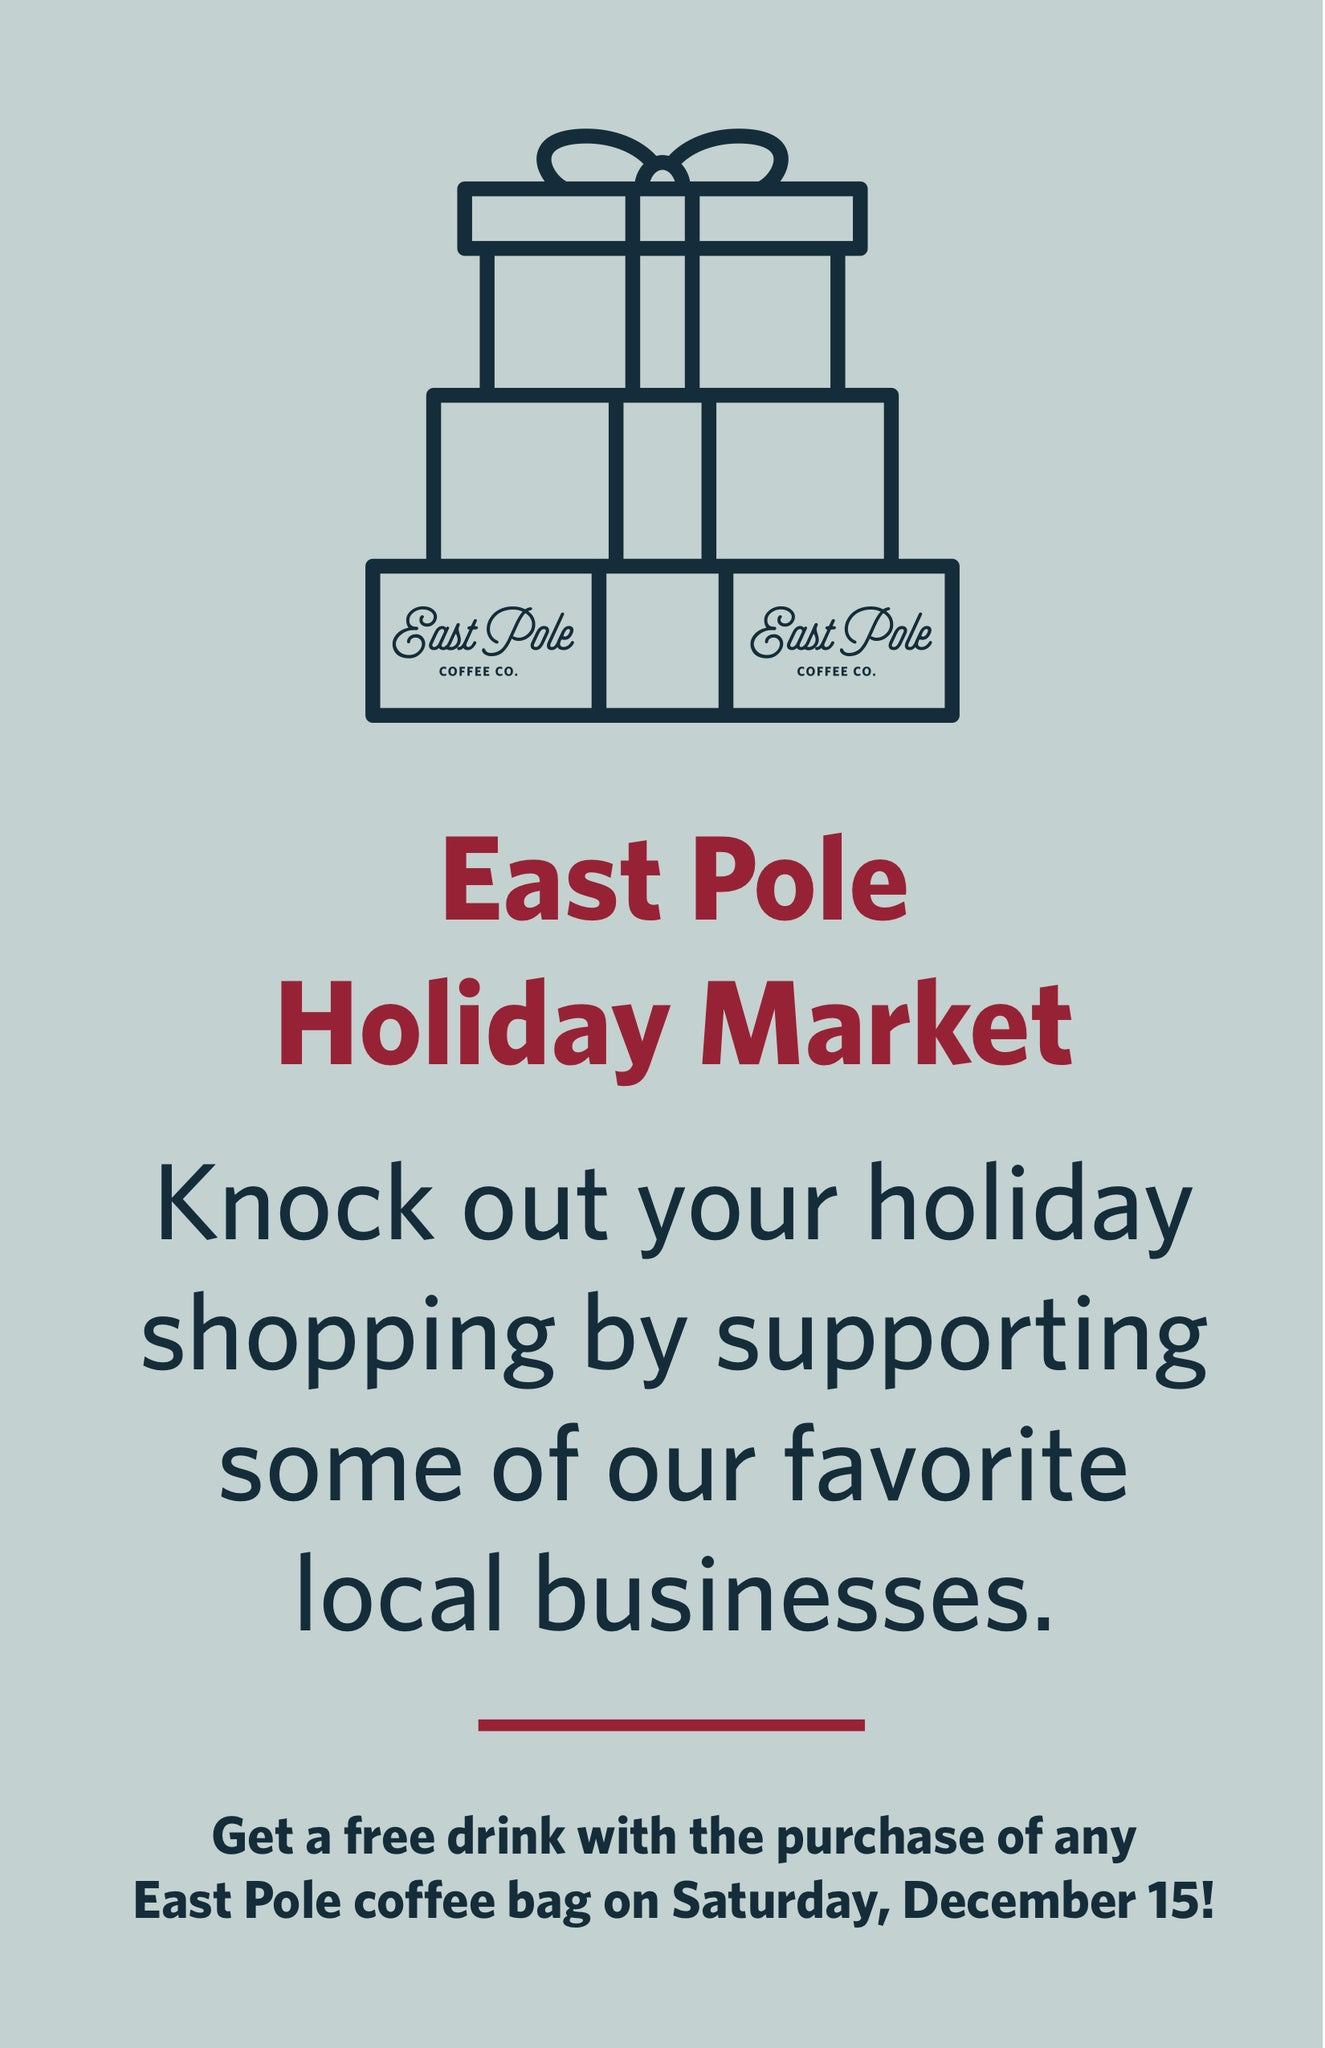 Cait + Co will be at East Pole's Holiday Market this Saturday!